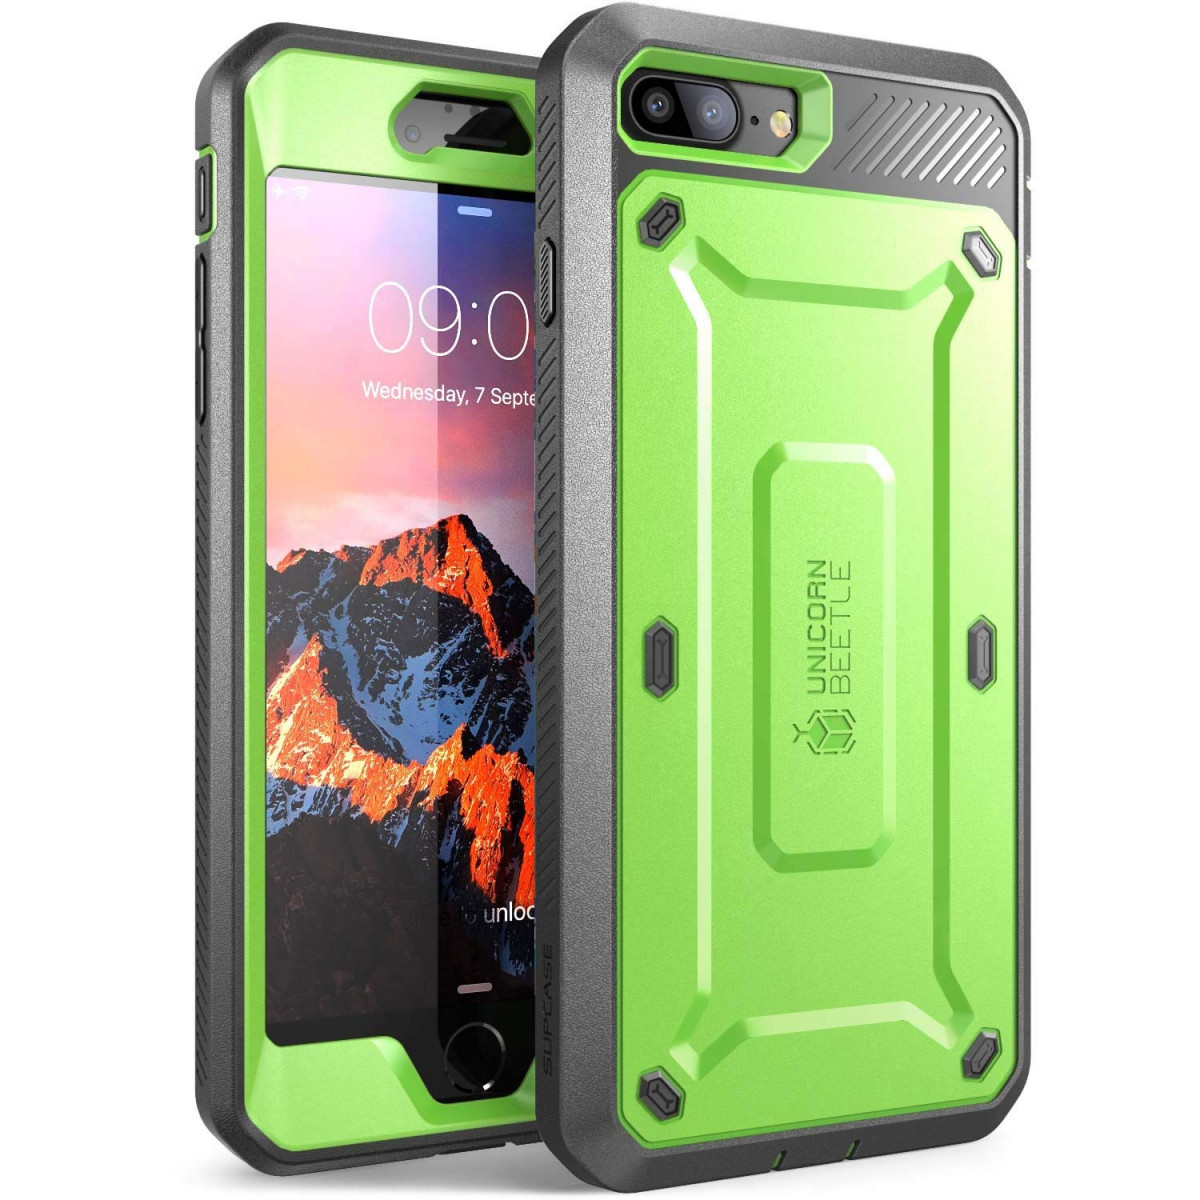 huge selection of 429d9 37b0a SUPCASE iPhone 7 Plus Case, iPhone 8 Plus Case, Unicorn Beetle Pro Series  Full-body Rugged Holster Case with Built-in Screen Protector for iPhone 7  ...